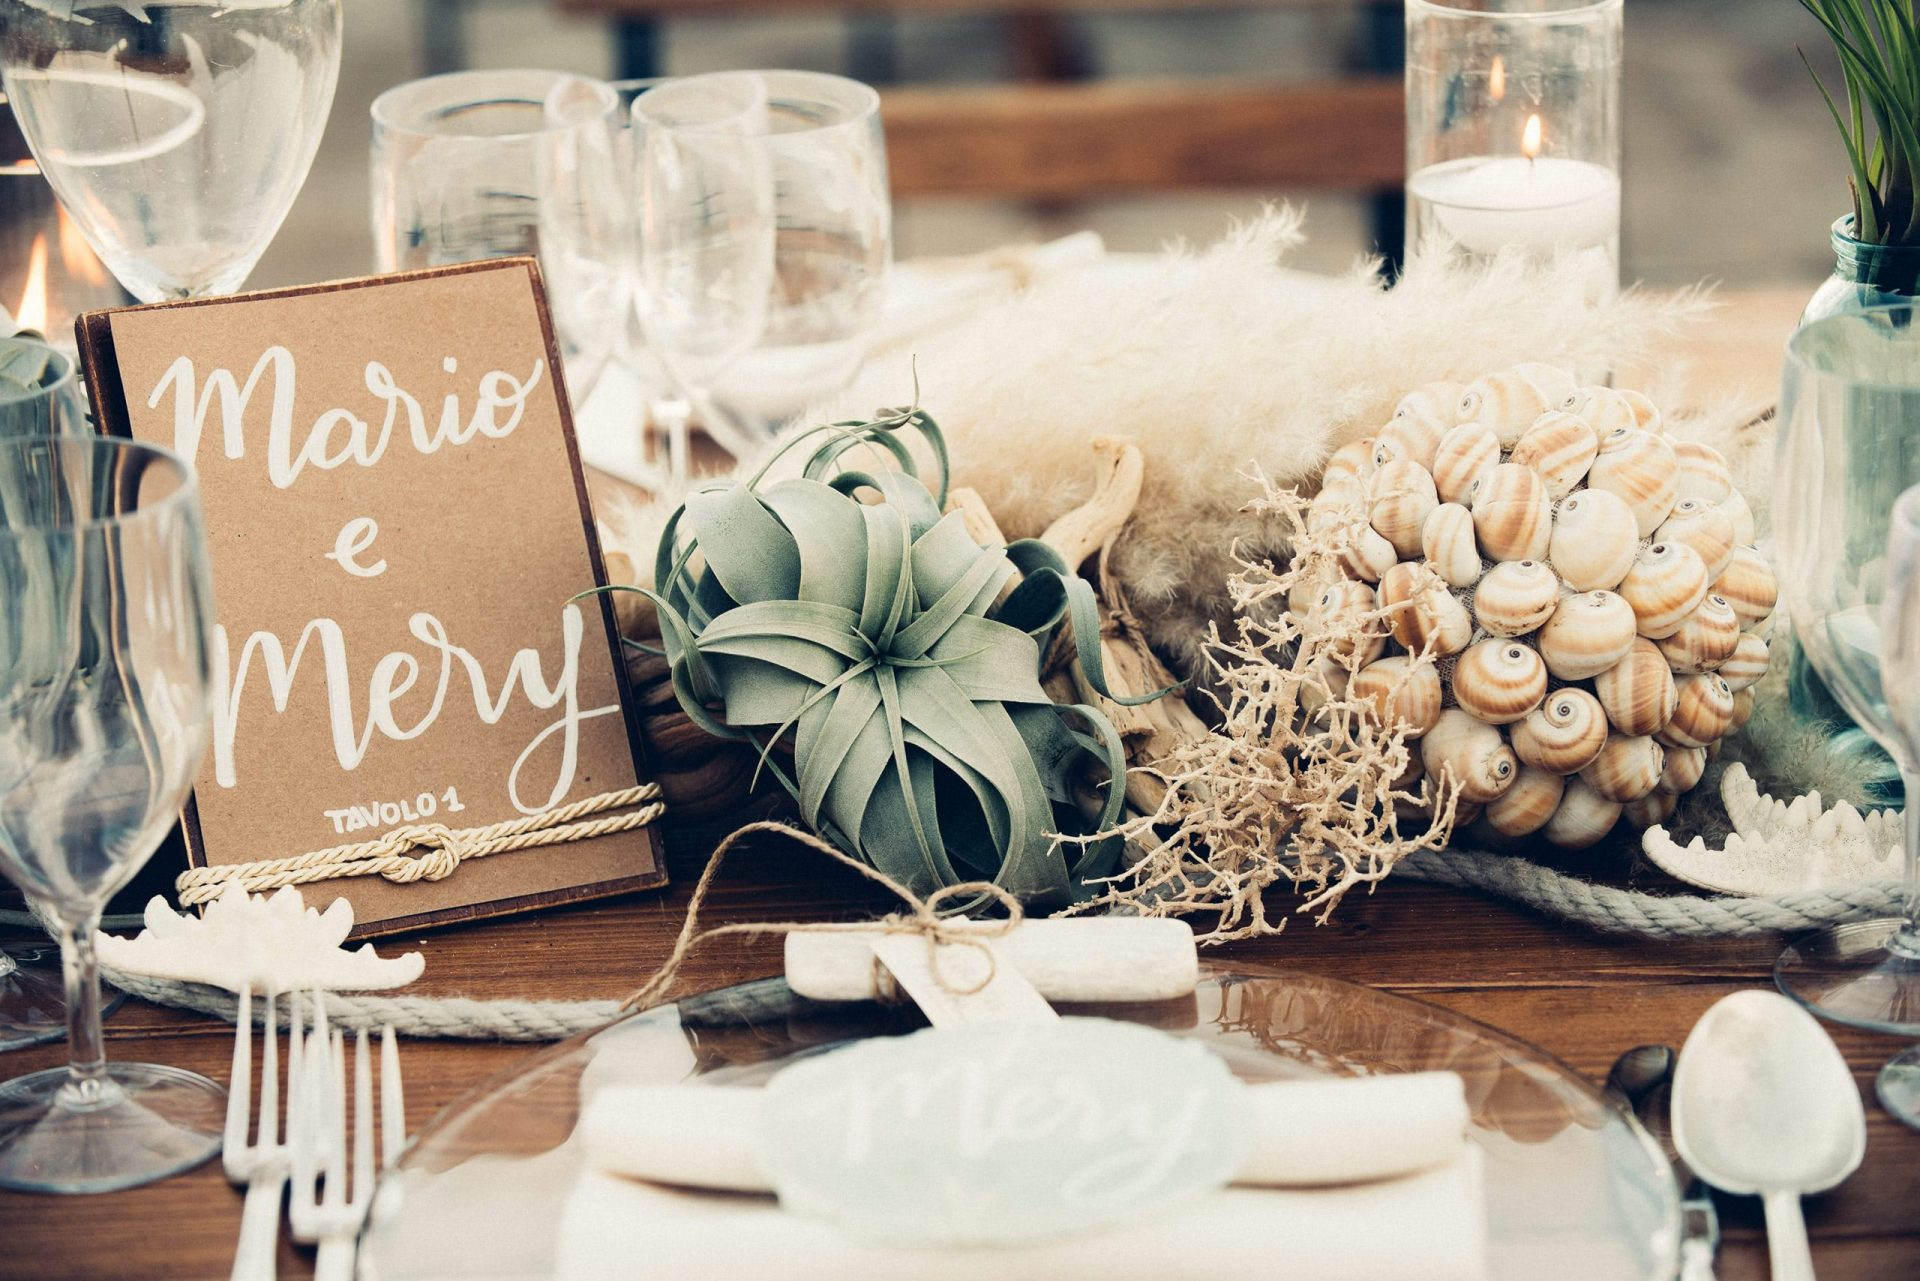 Mario and Mery, beach wedding table details